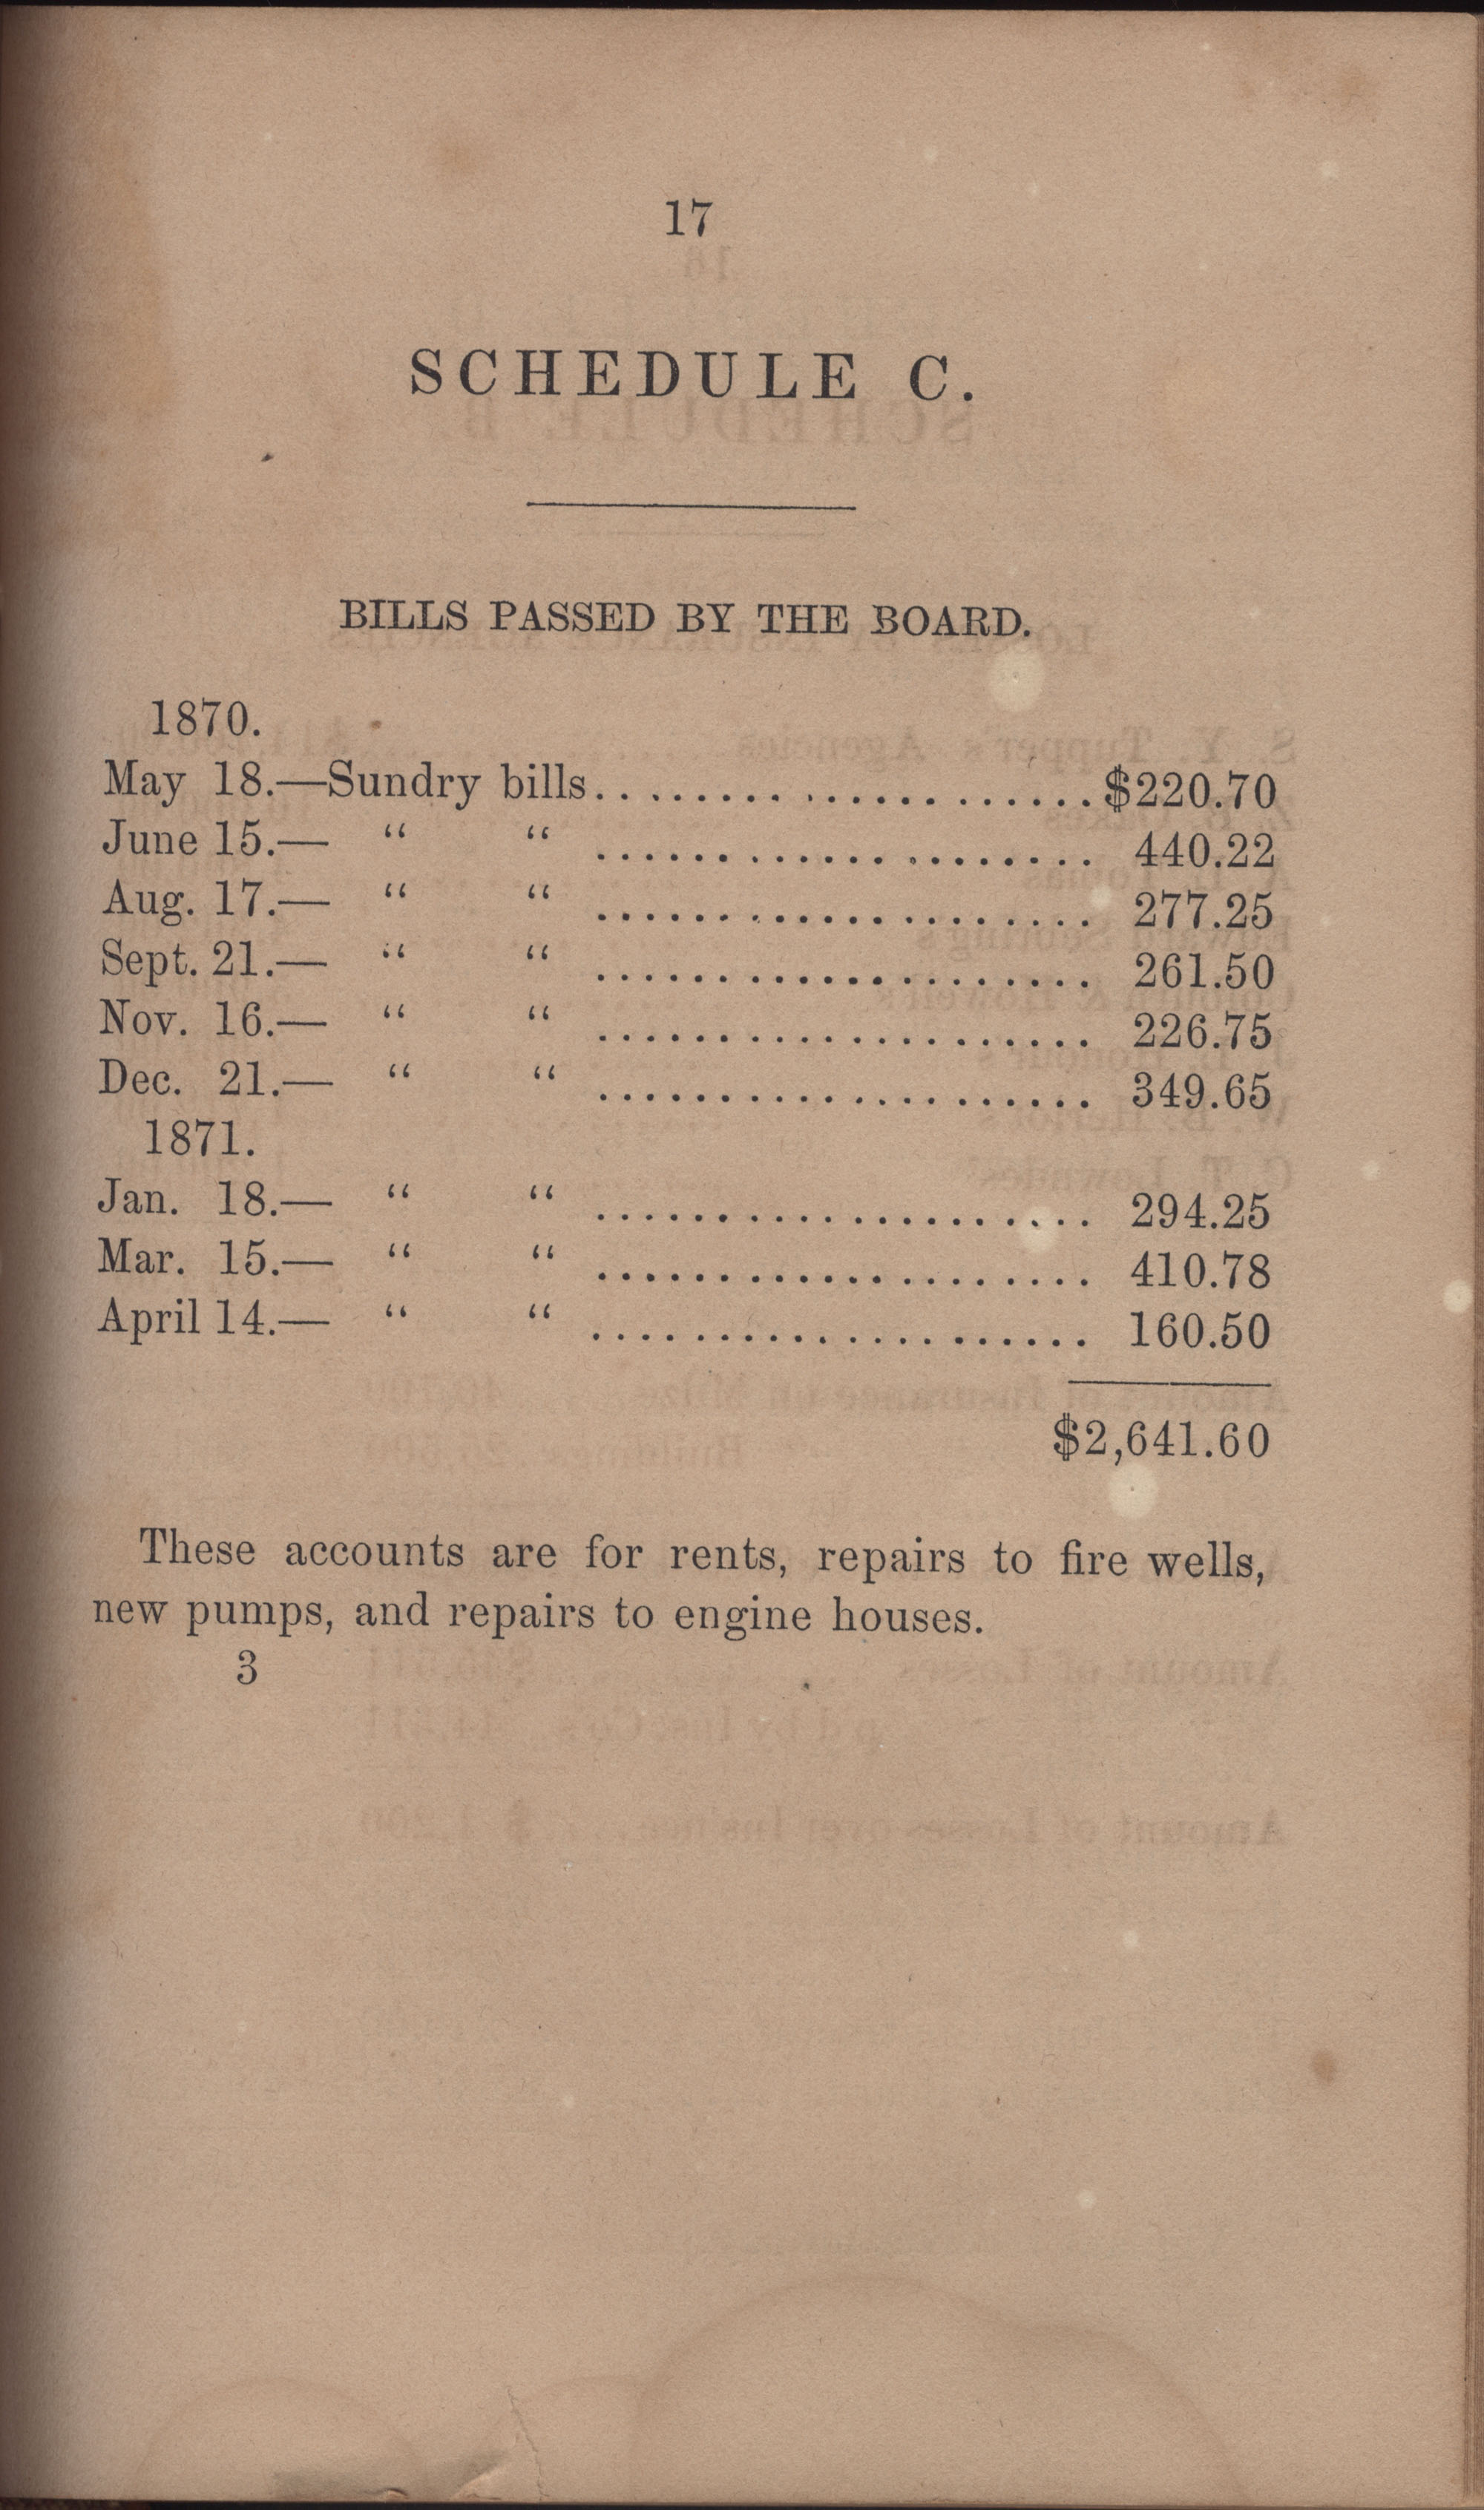 Annual Report of the Chief of the Fire Department of the City of Charleston, page 364